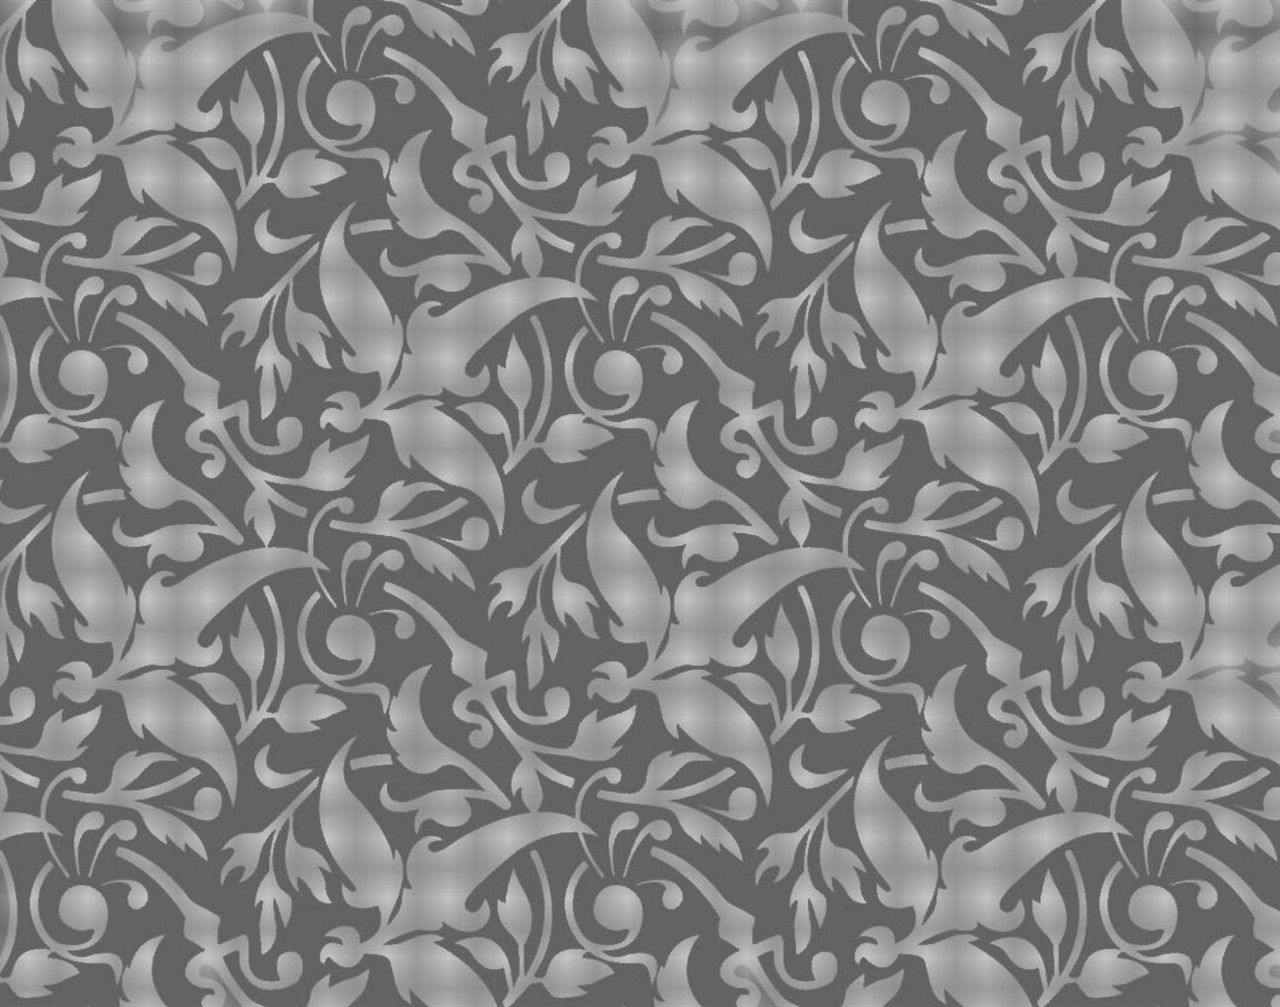 Gray wallpaper designs 2017 grasscloth wallpaper for Gray and white wallpaper designs